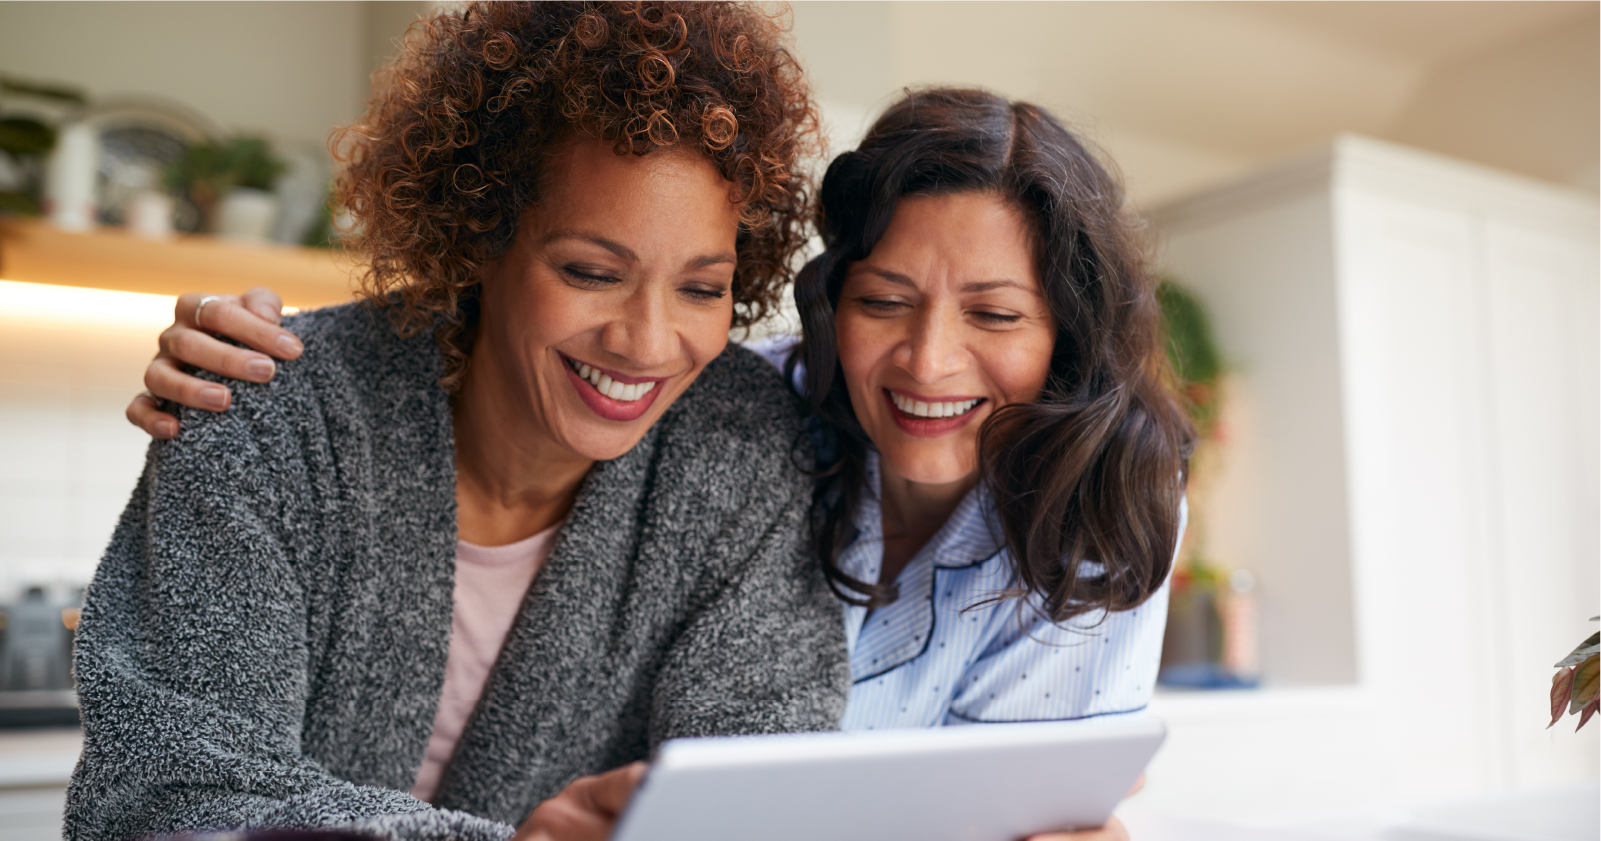 photo of two women huddled together at their kitchen counter and smiling as they read a tablet together